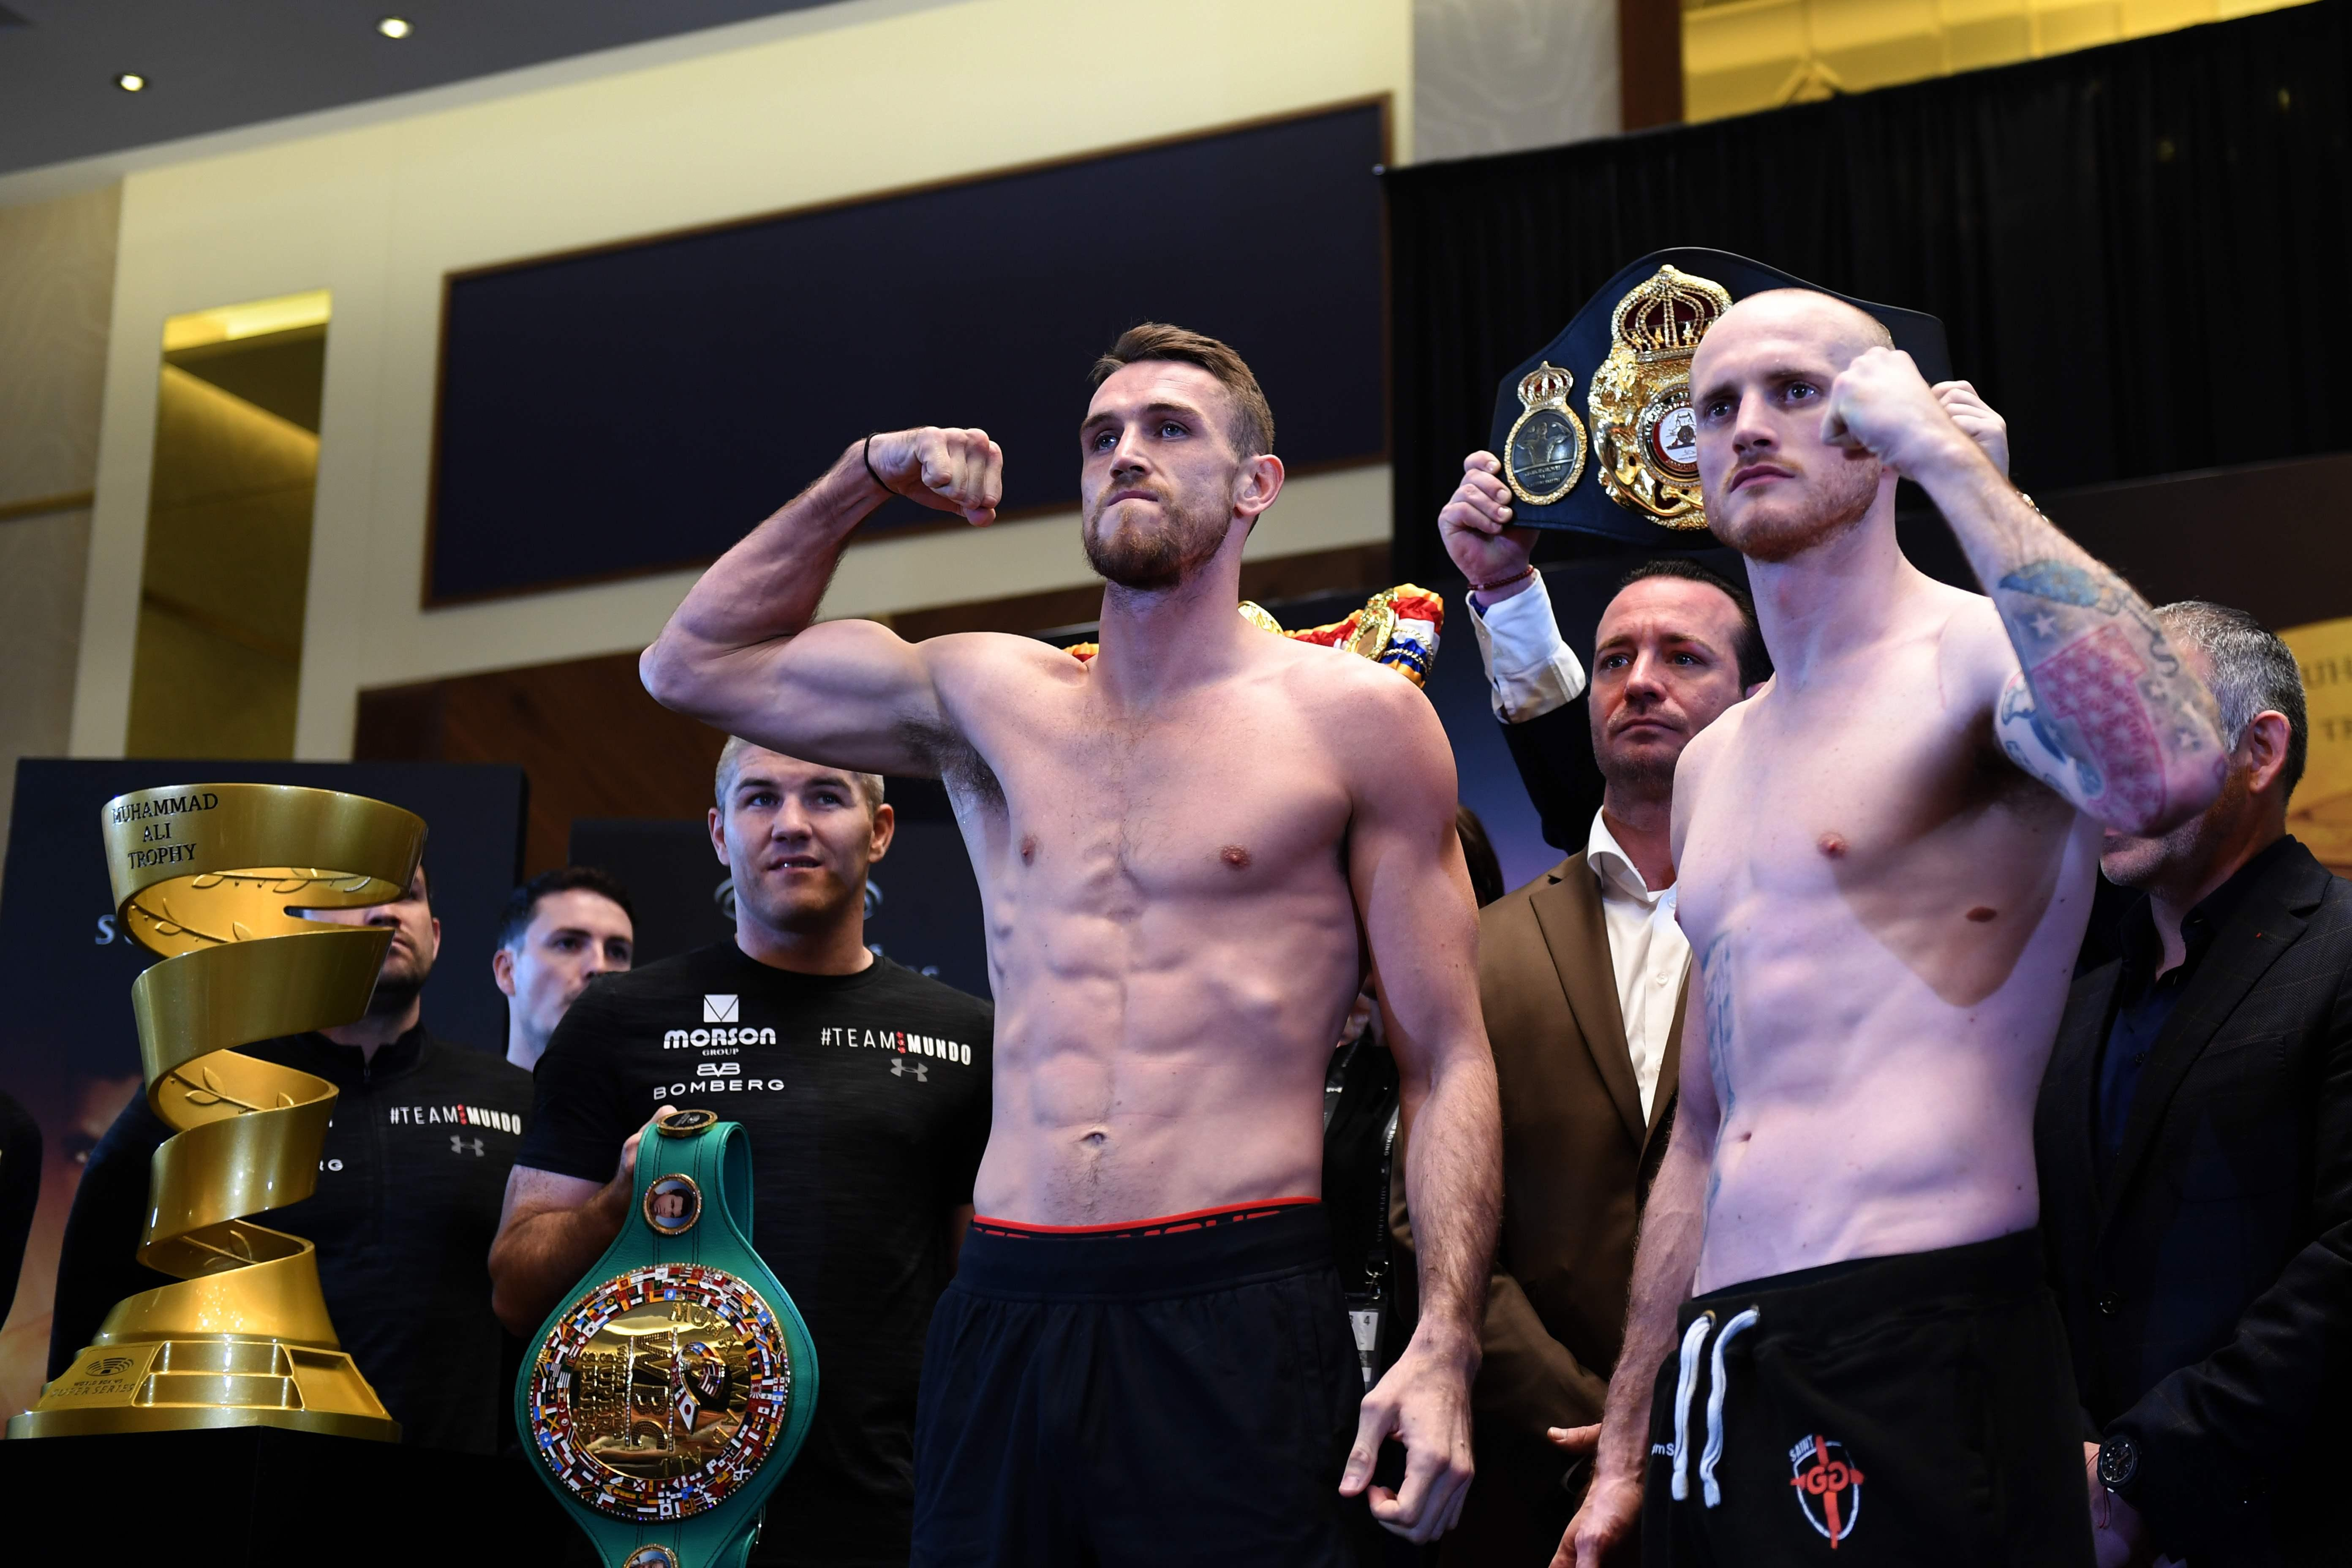 Callum Smith and George Groves pose next to the Muhammad Ali trophy after their weigh in yesterday